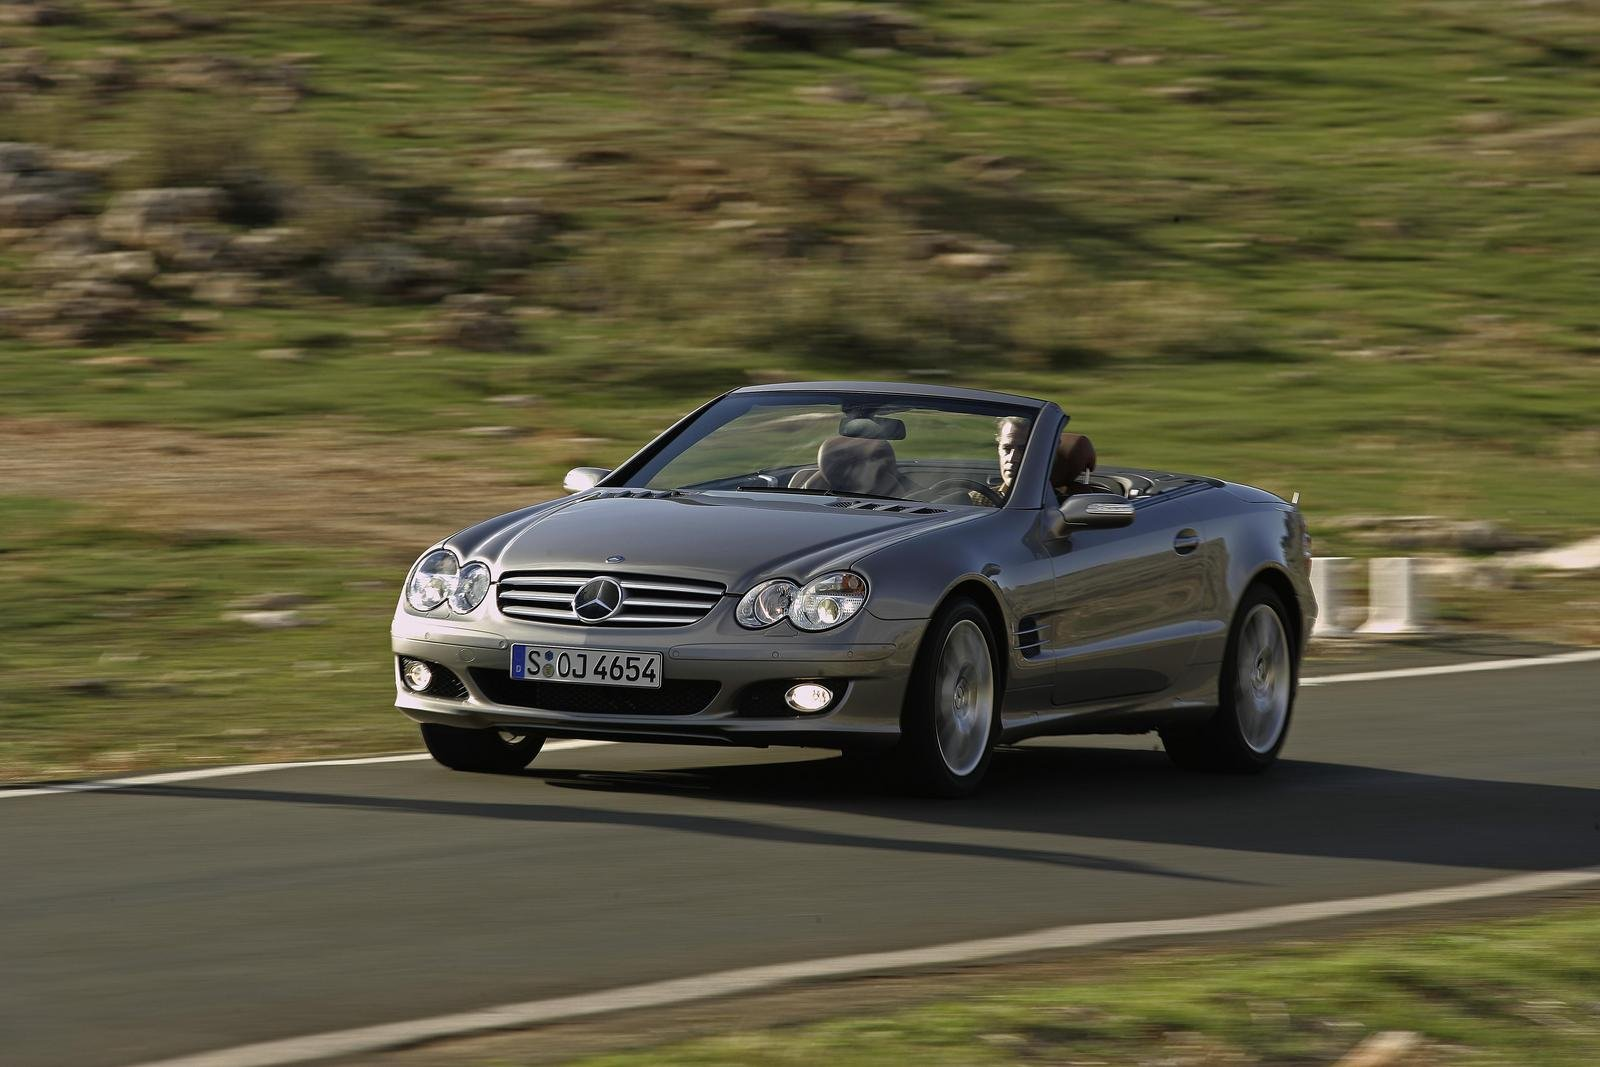 2007 mercedes sl class picture 121389 car review top for 2007 mercedes benz sl500